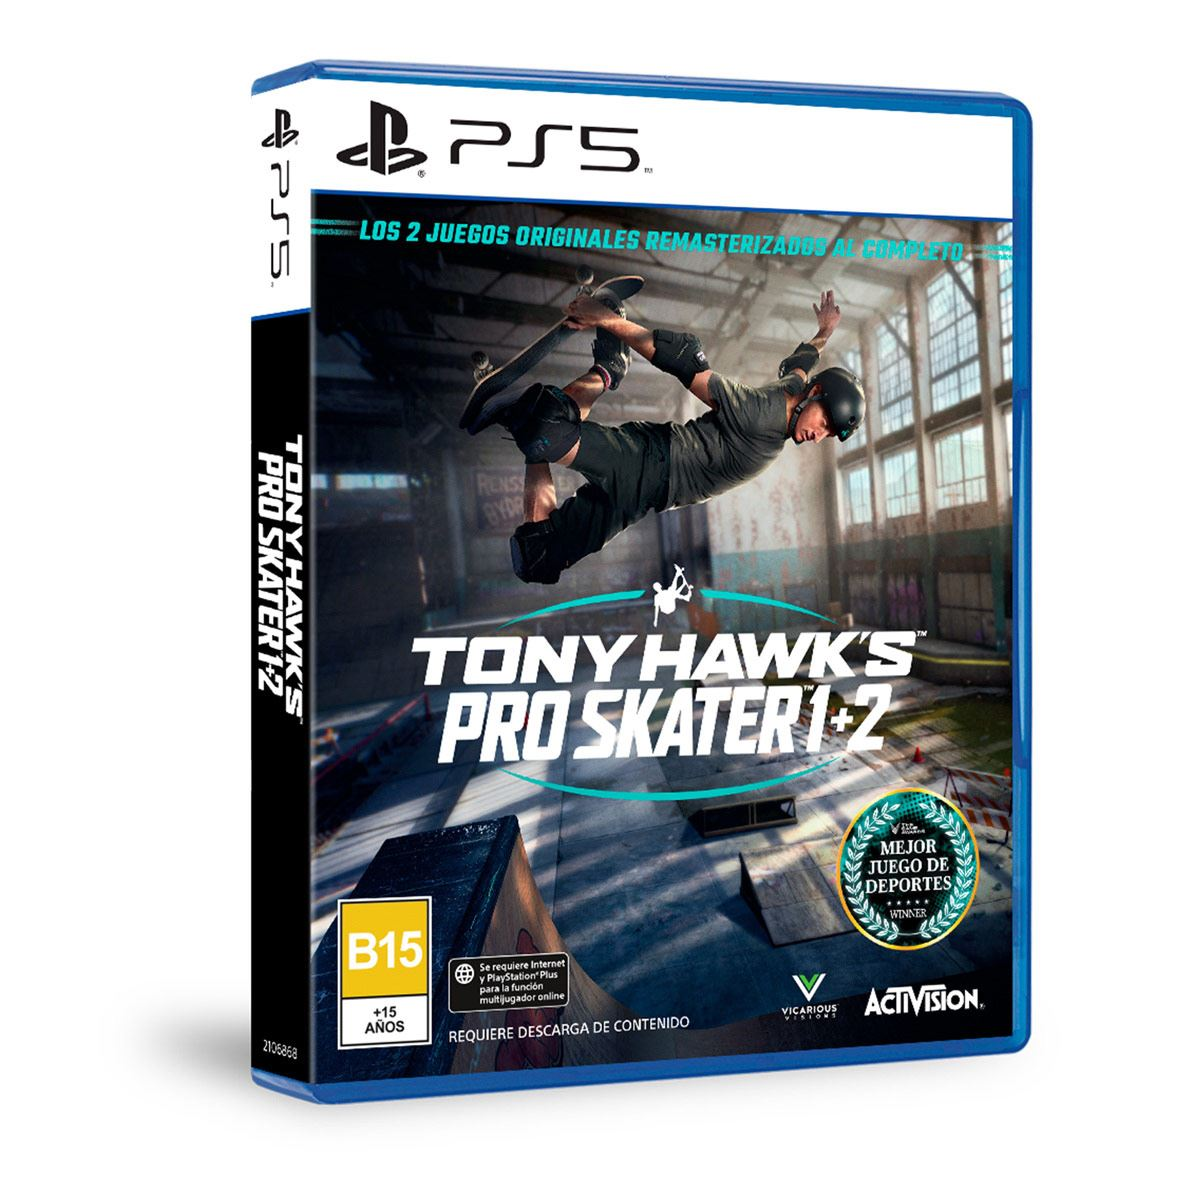 PS5 Tony Hawk's Pro Skater 1+2